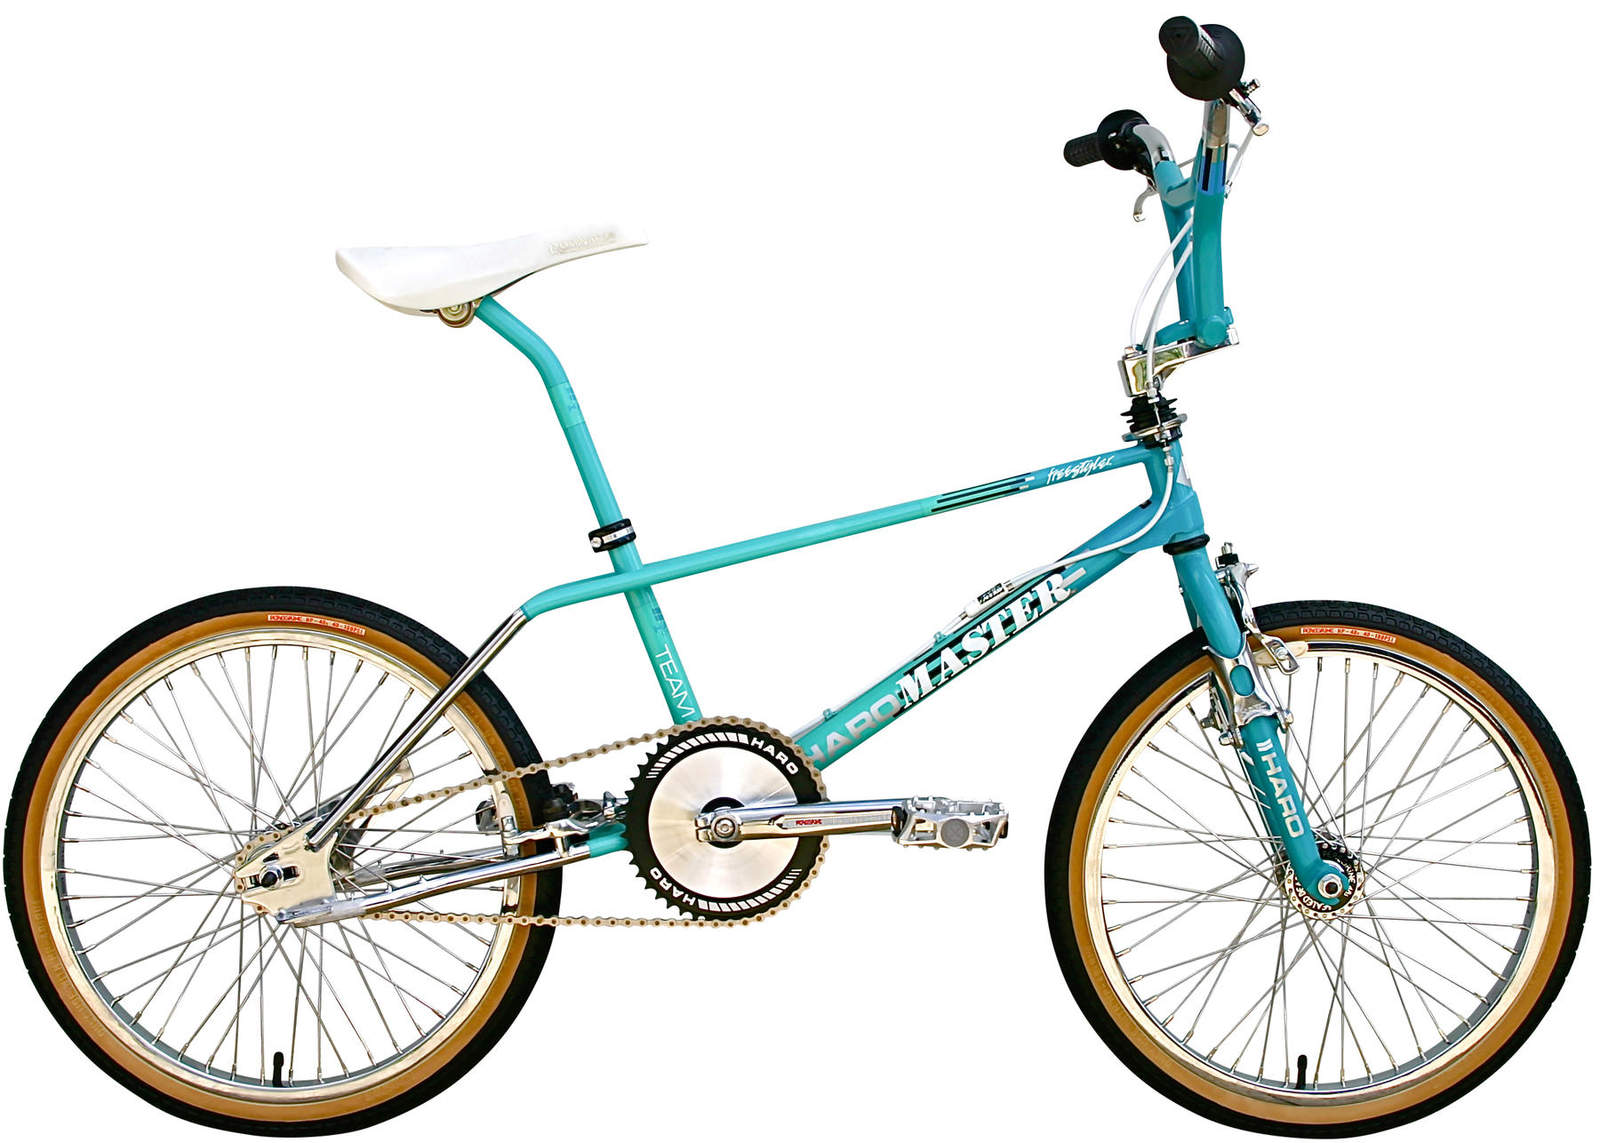 http://uploads.bmxmuseum.com/user-images/36359/1988-tur_mint-master58c86dd4a1_blowup5a89793140.jpg